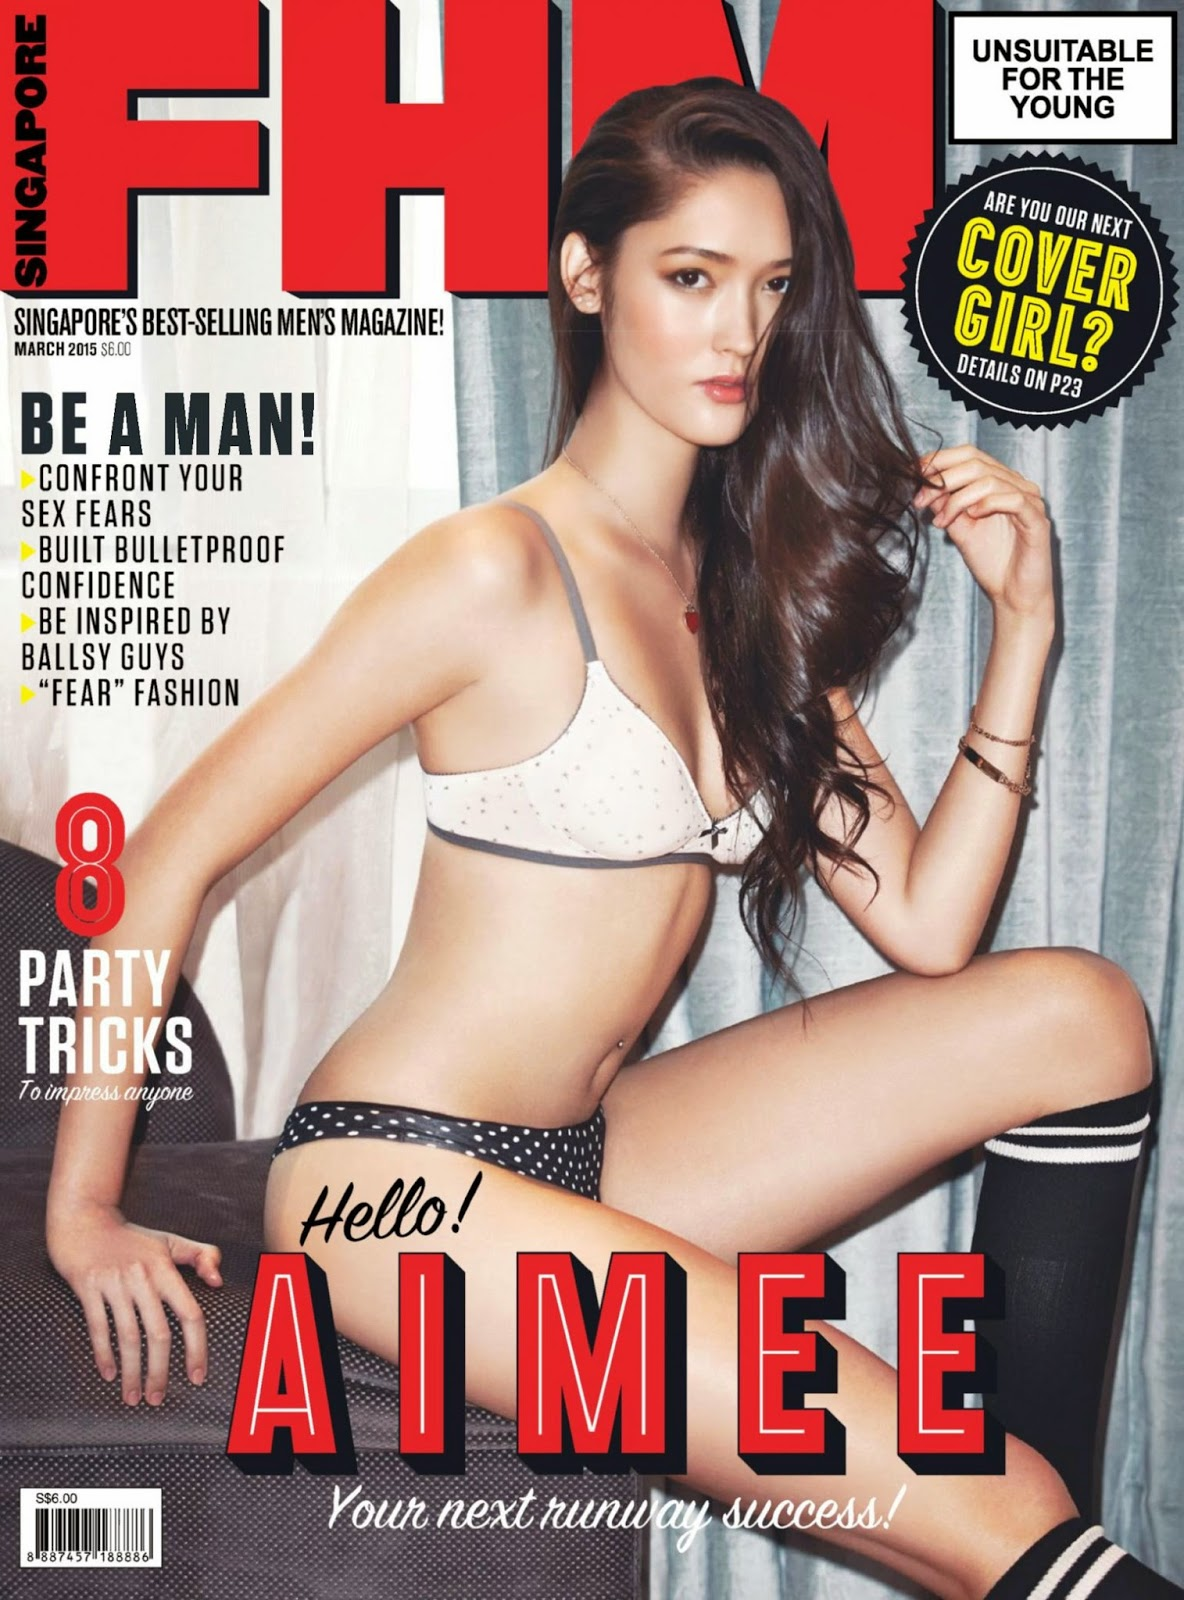 Model: Aimee Cheng-Bradshaw - FHM Singapore March 2015